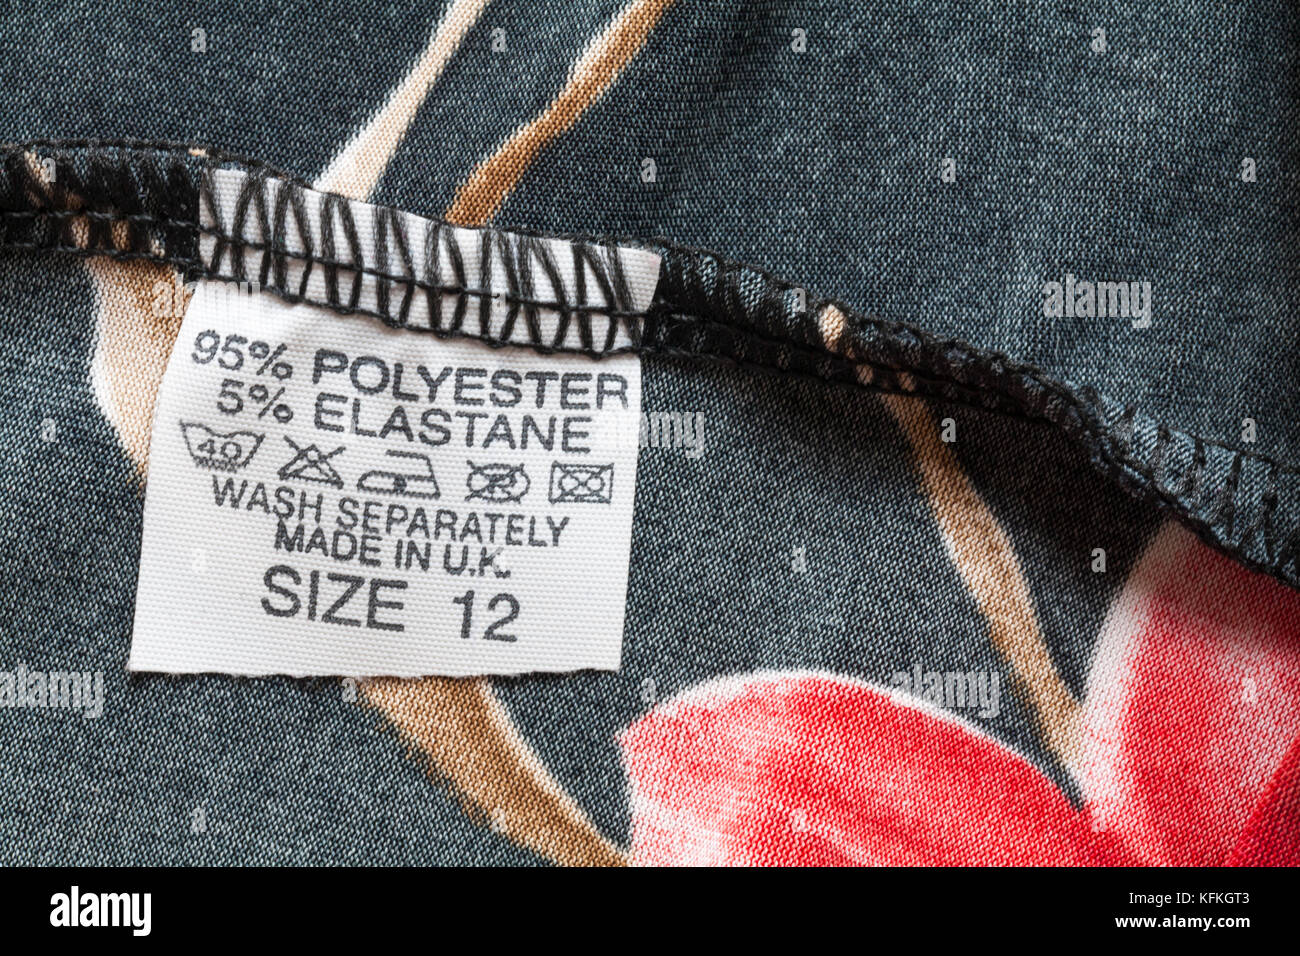 96 Polyester 5 Elastane Label In Womans Top Size 12 Made In Uk